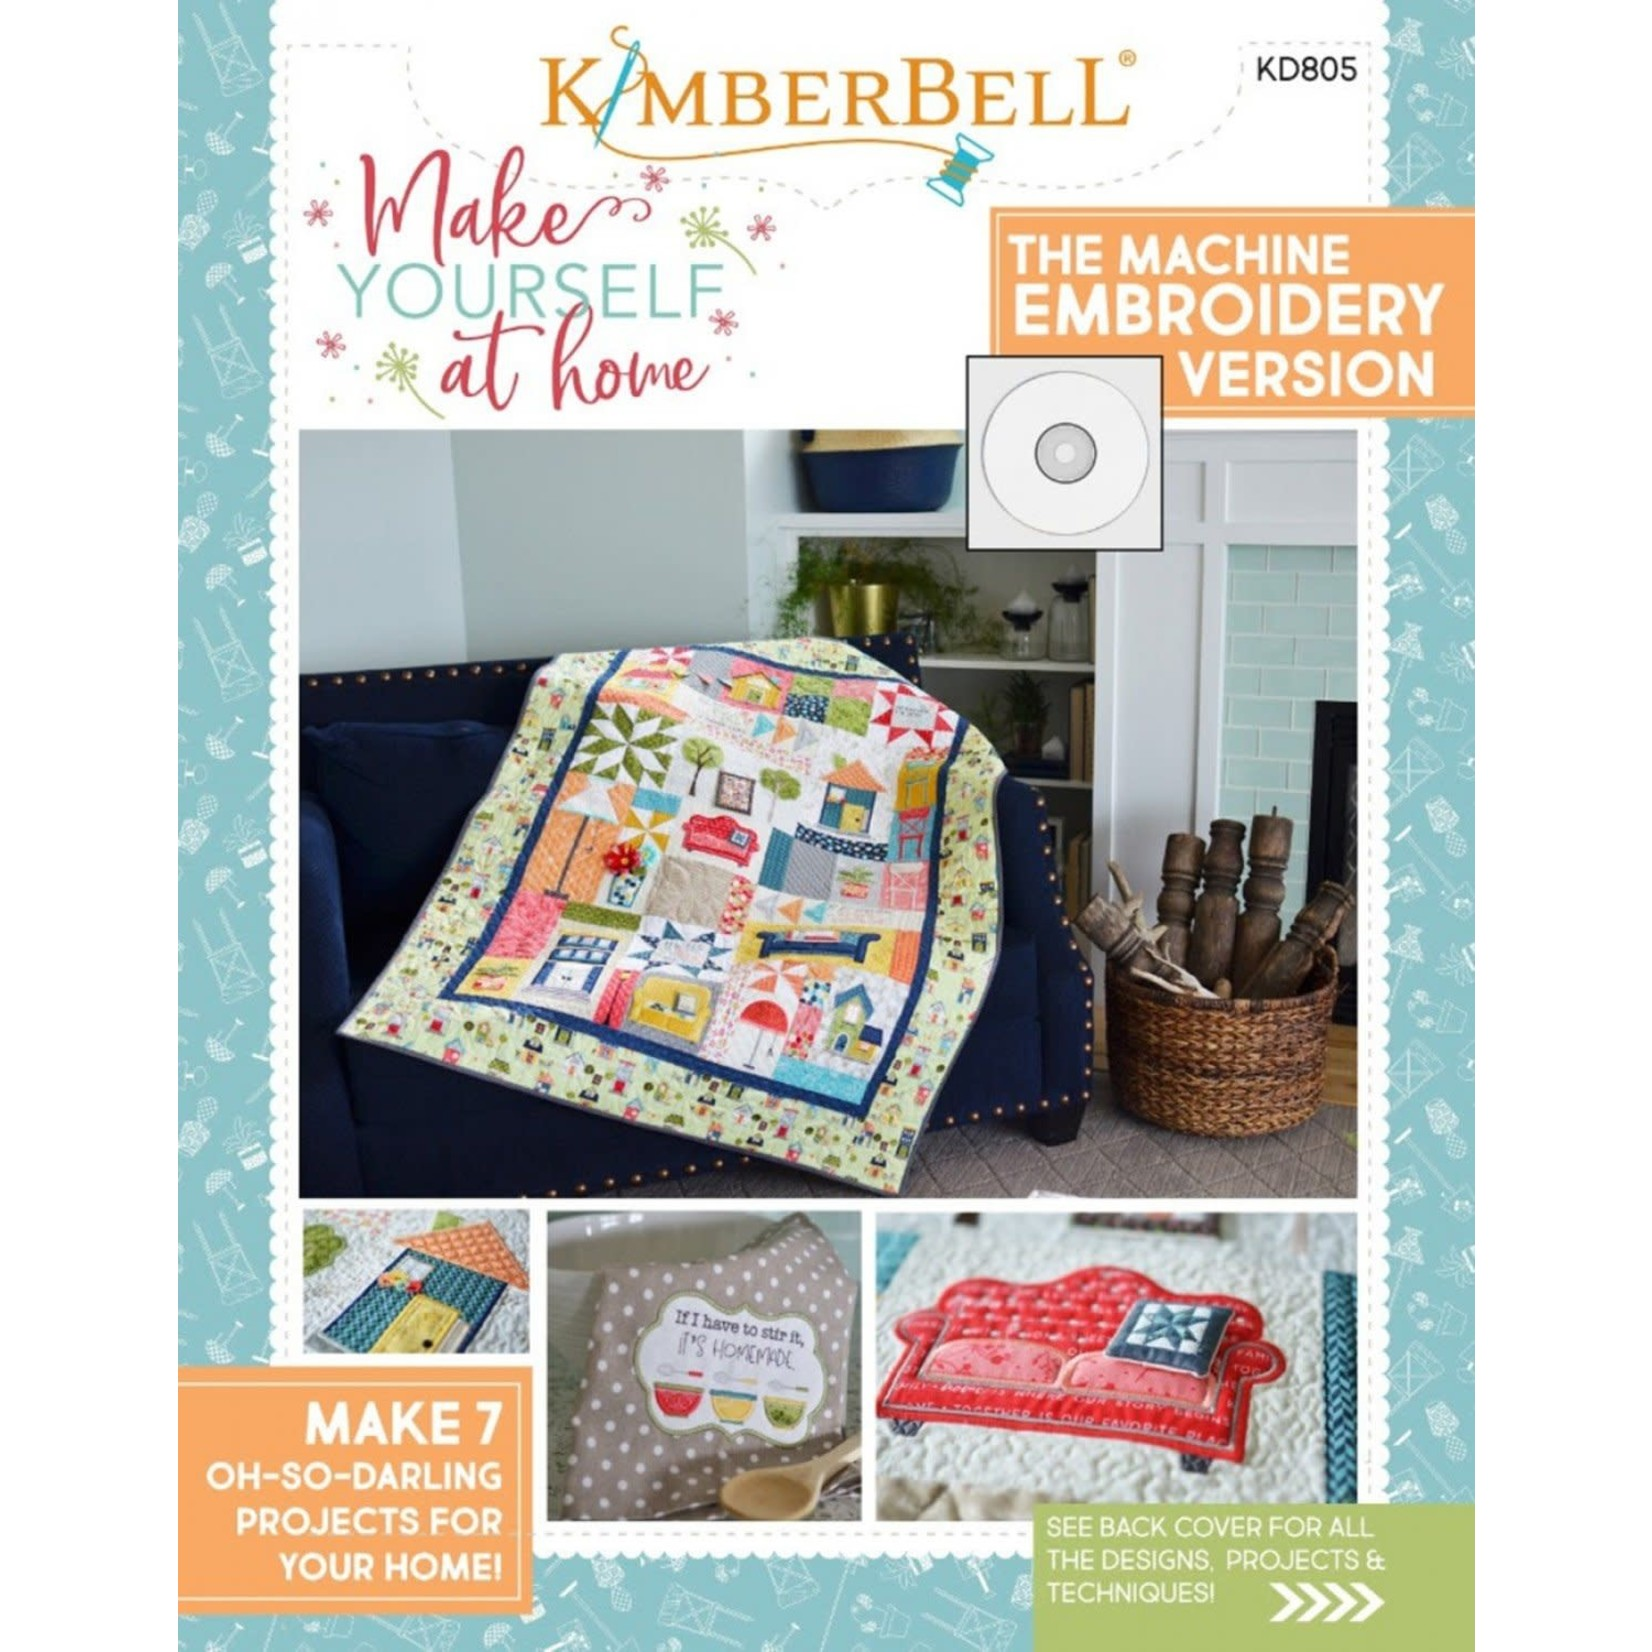 Kimberbell Designs Make Yourself at Home (The Machine Embroidery Version)